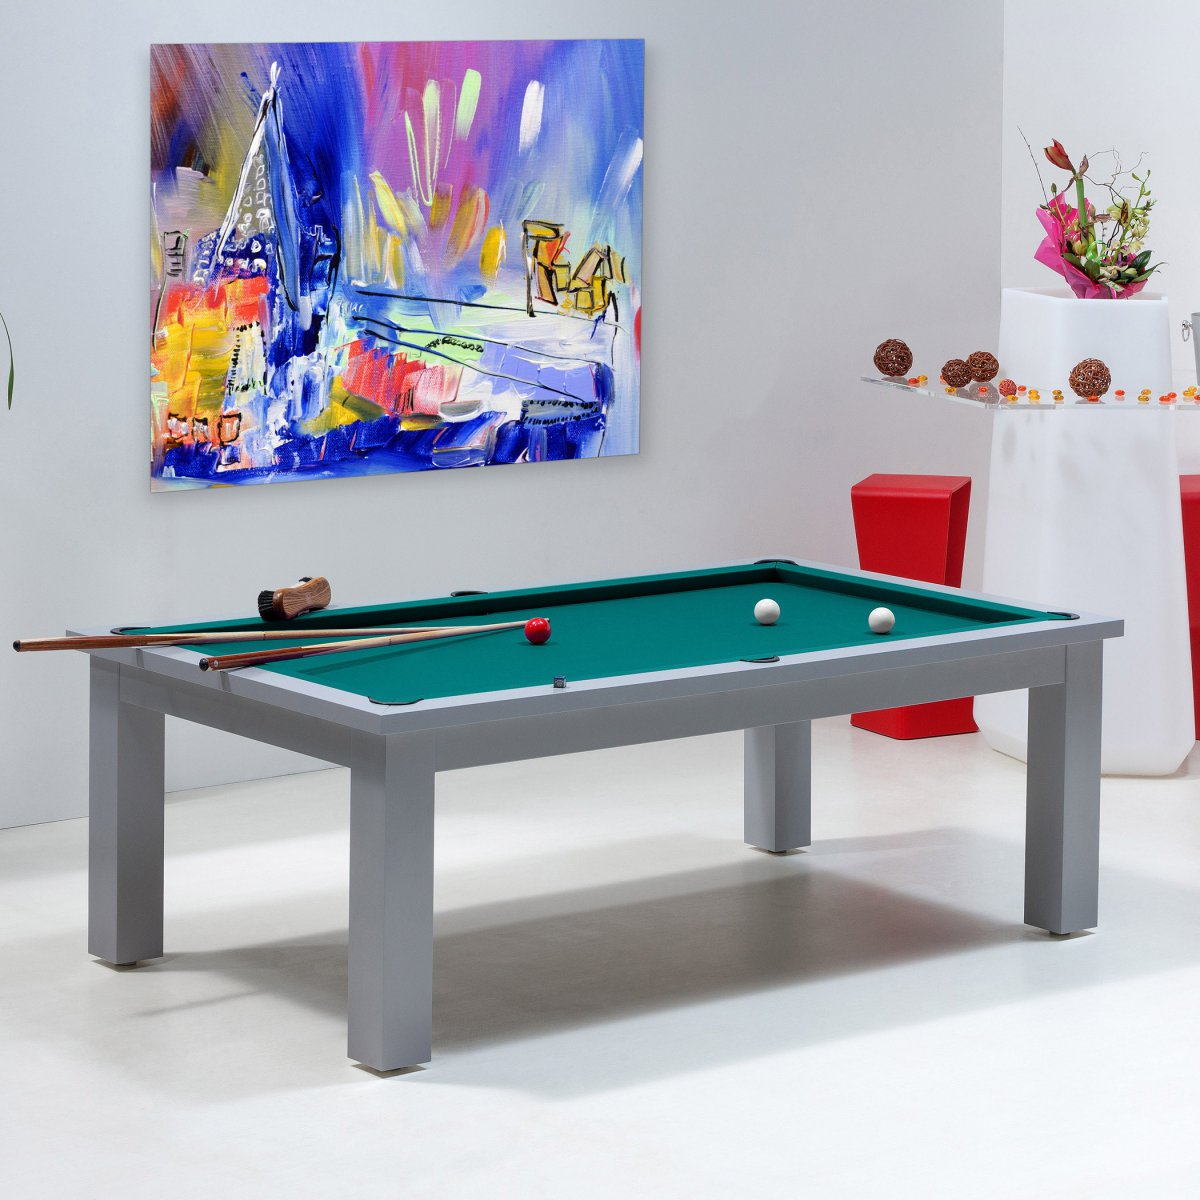 Table billard transformable paris - Table de salon convertible ...